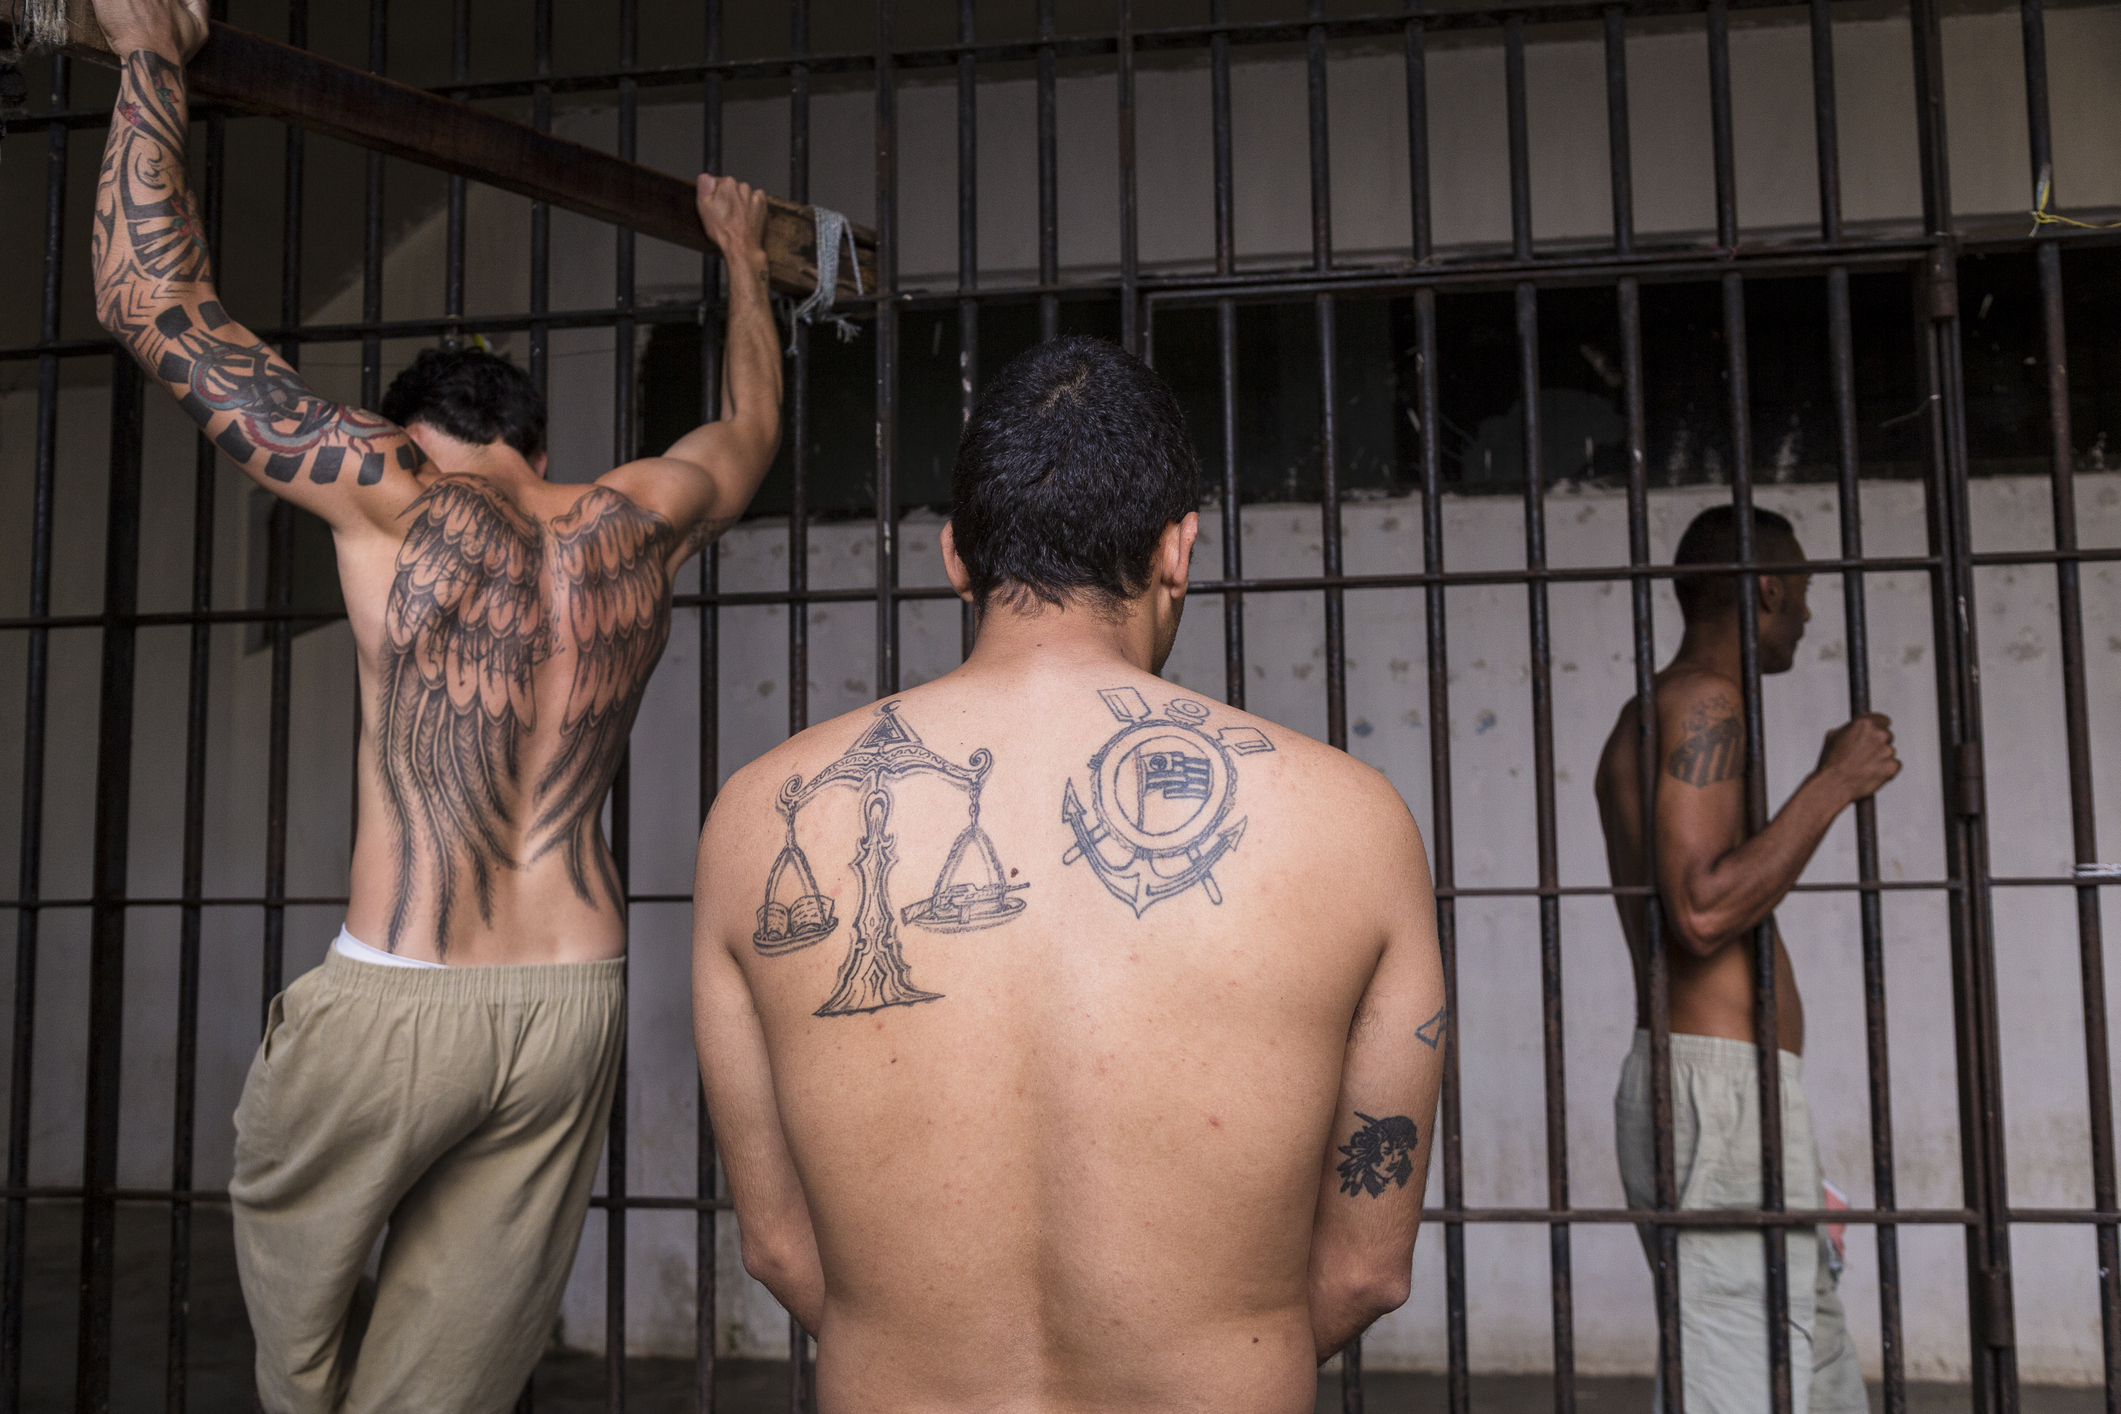 Prisoners working out inside Adriano Marrey maximum security penitenciary, Guarulhos. Brazil.